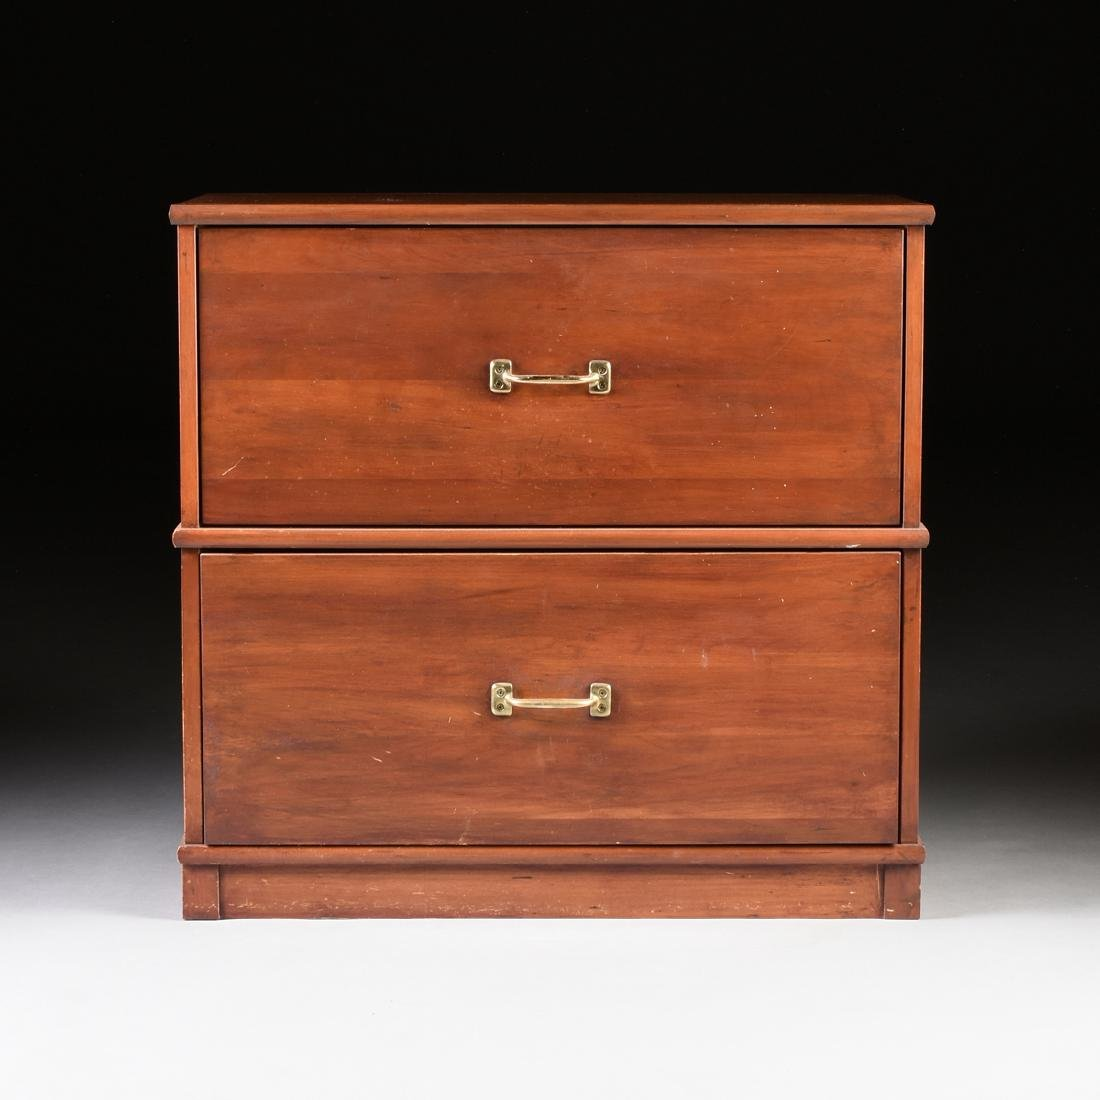 A LE VENGER MAHOGANY HORIZONTAL FILE CABINET WITH BRASS